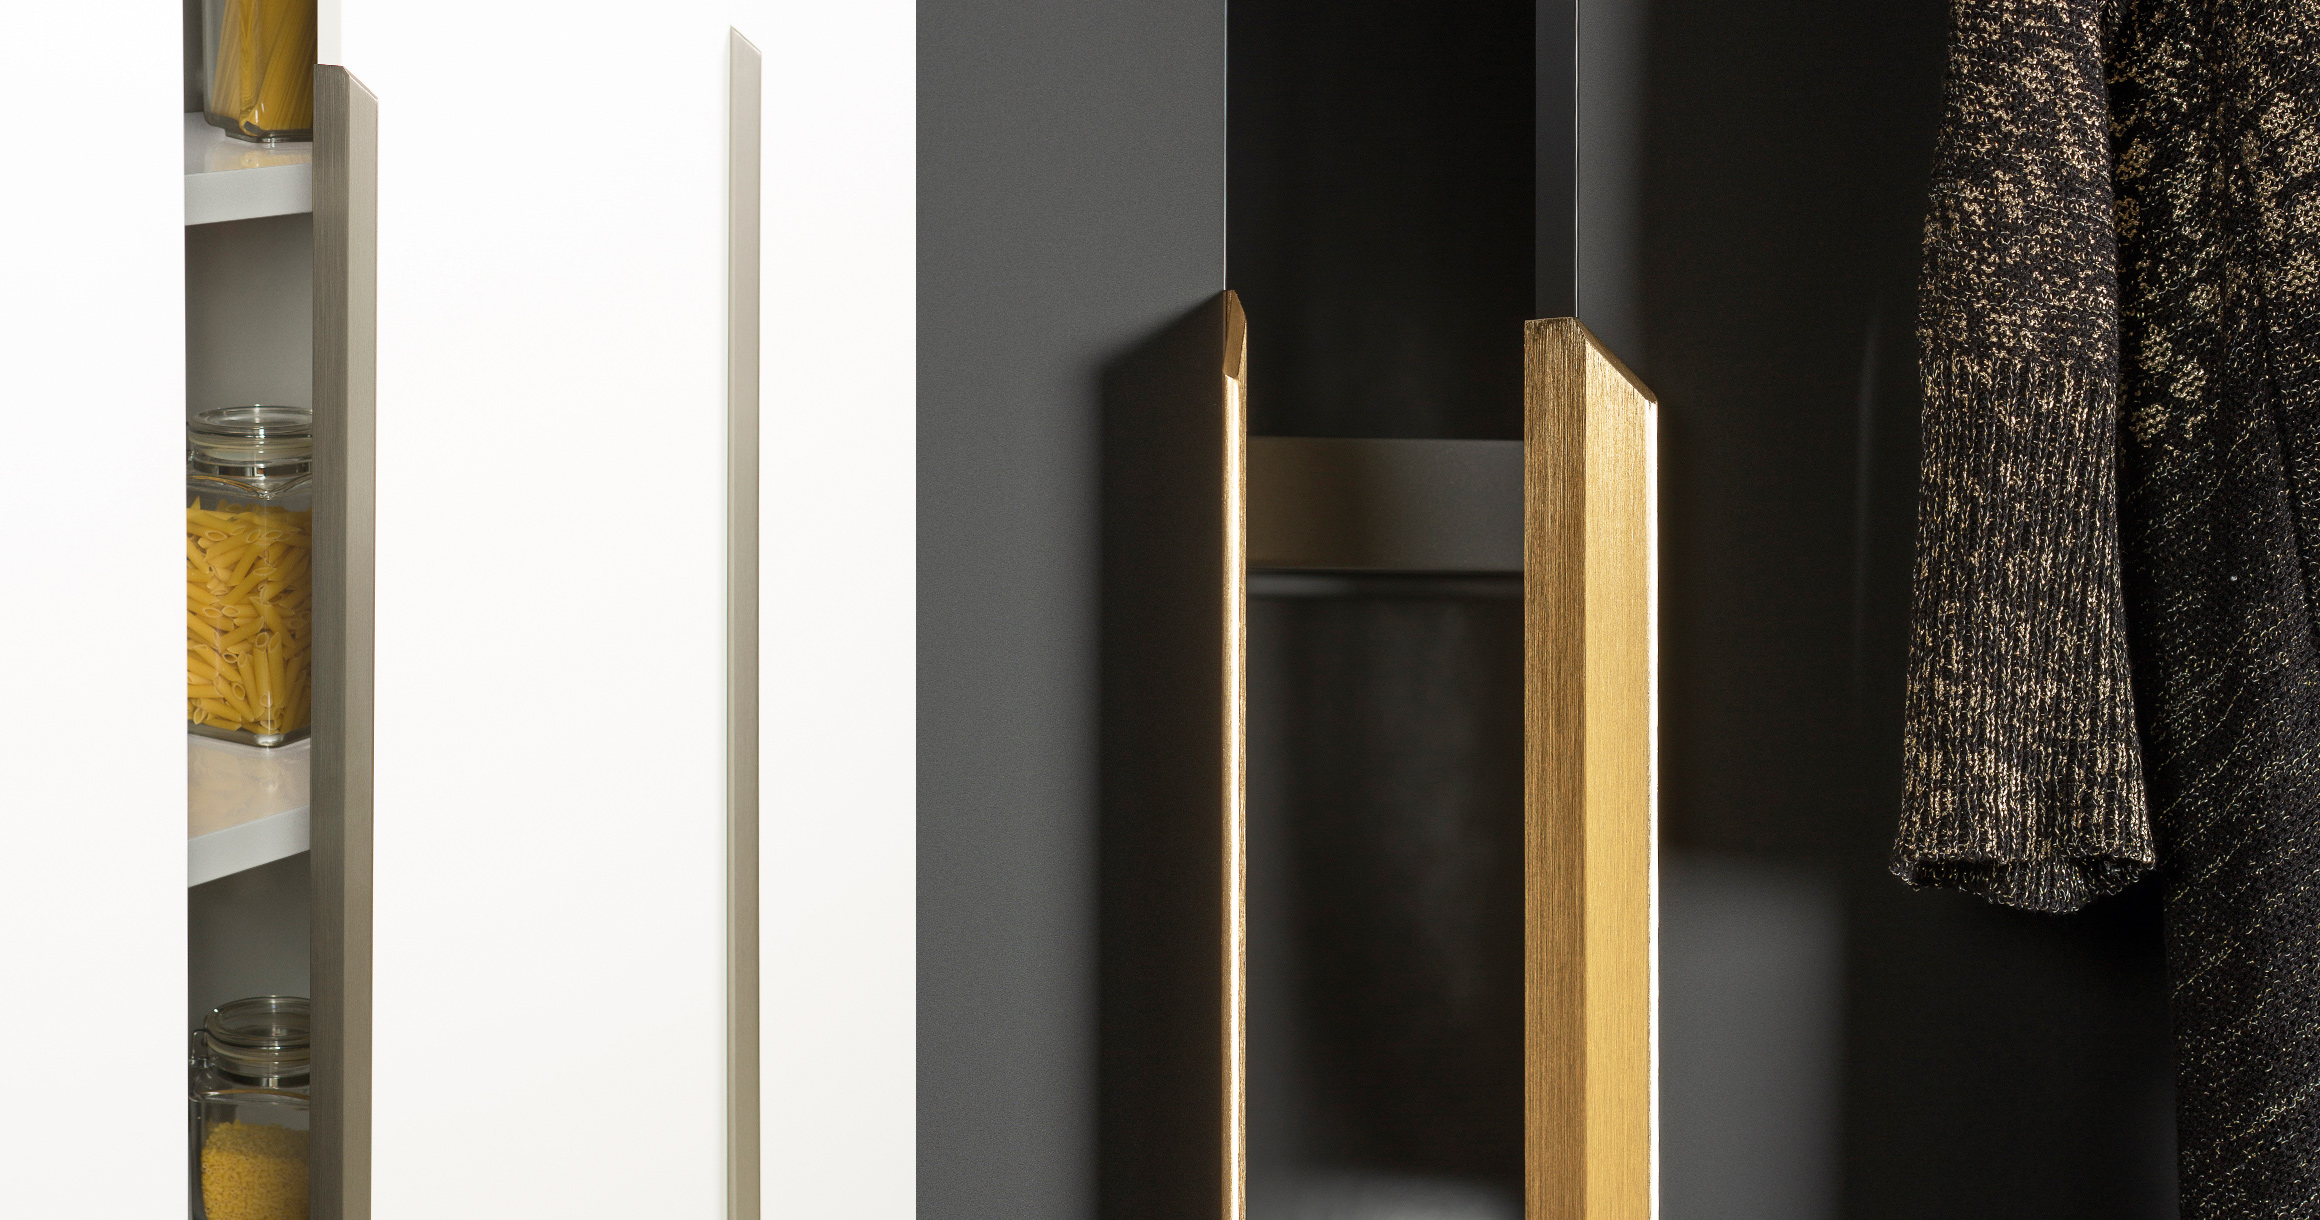 Vann 9314 mounted horizontally in brushed stainless steel (left) and dark brass (right). (Photo: Viefe)